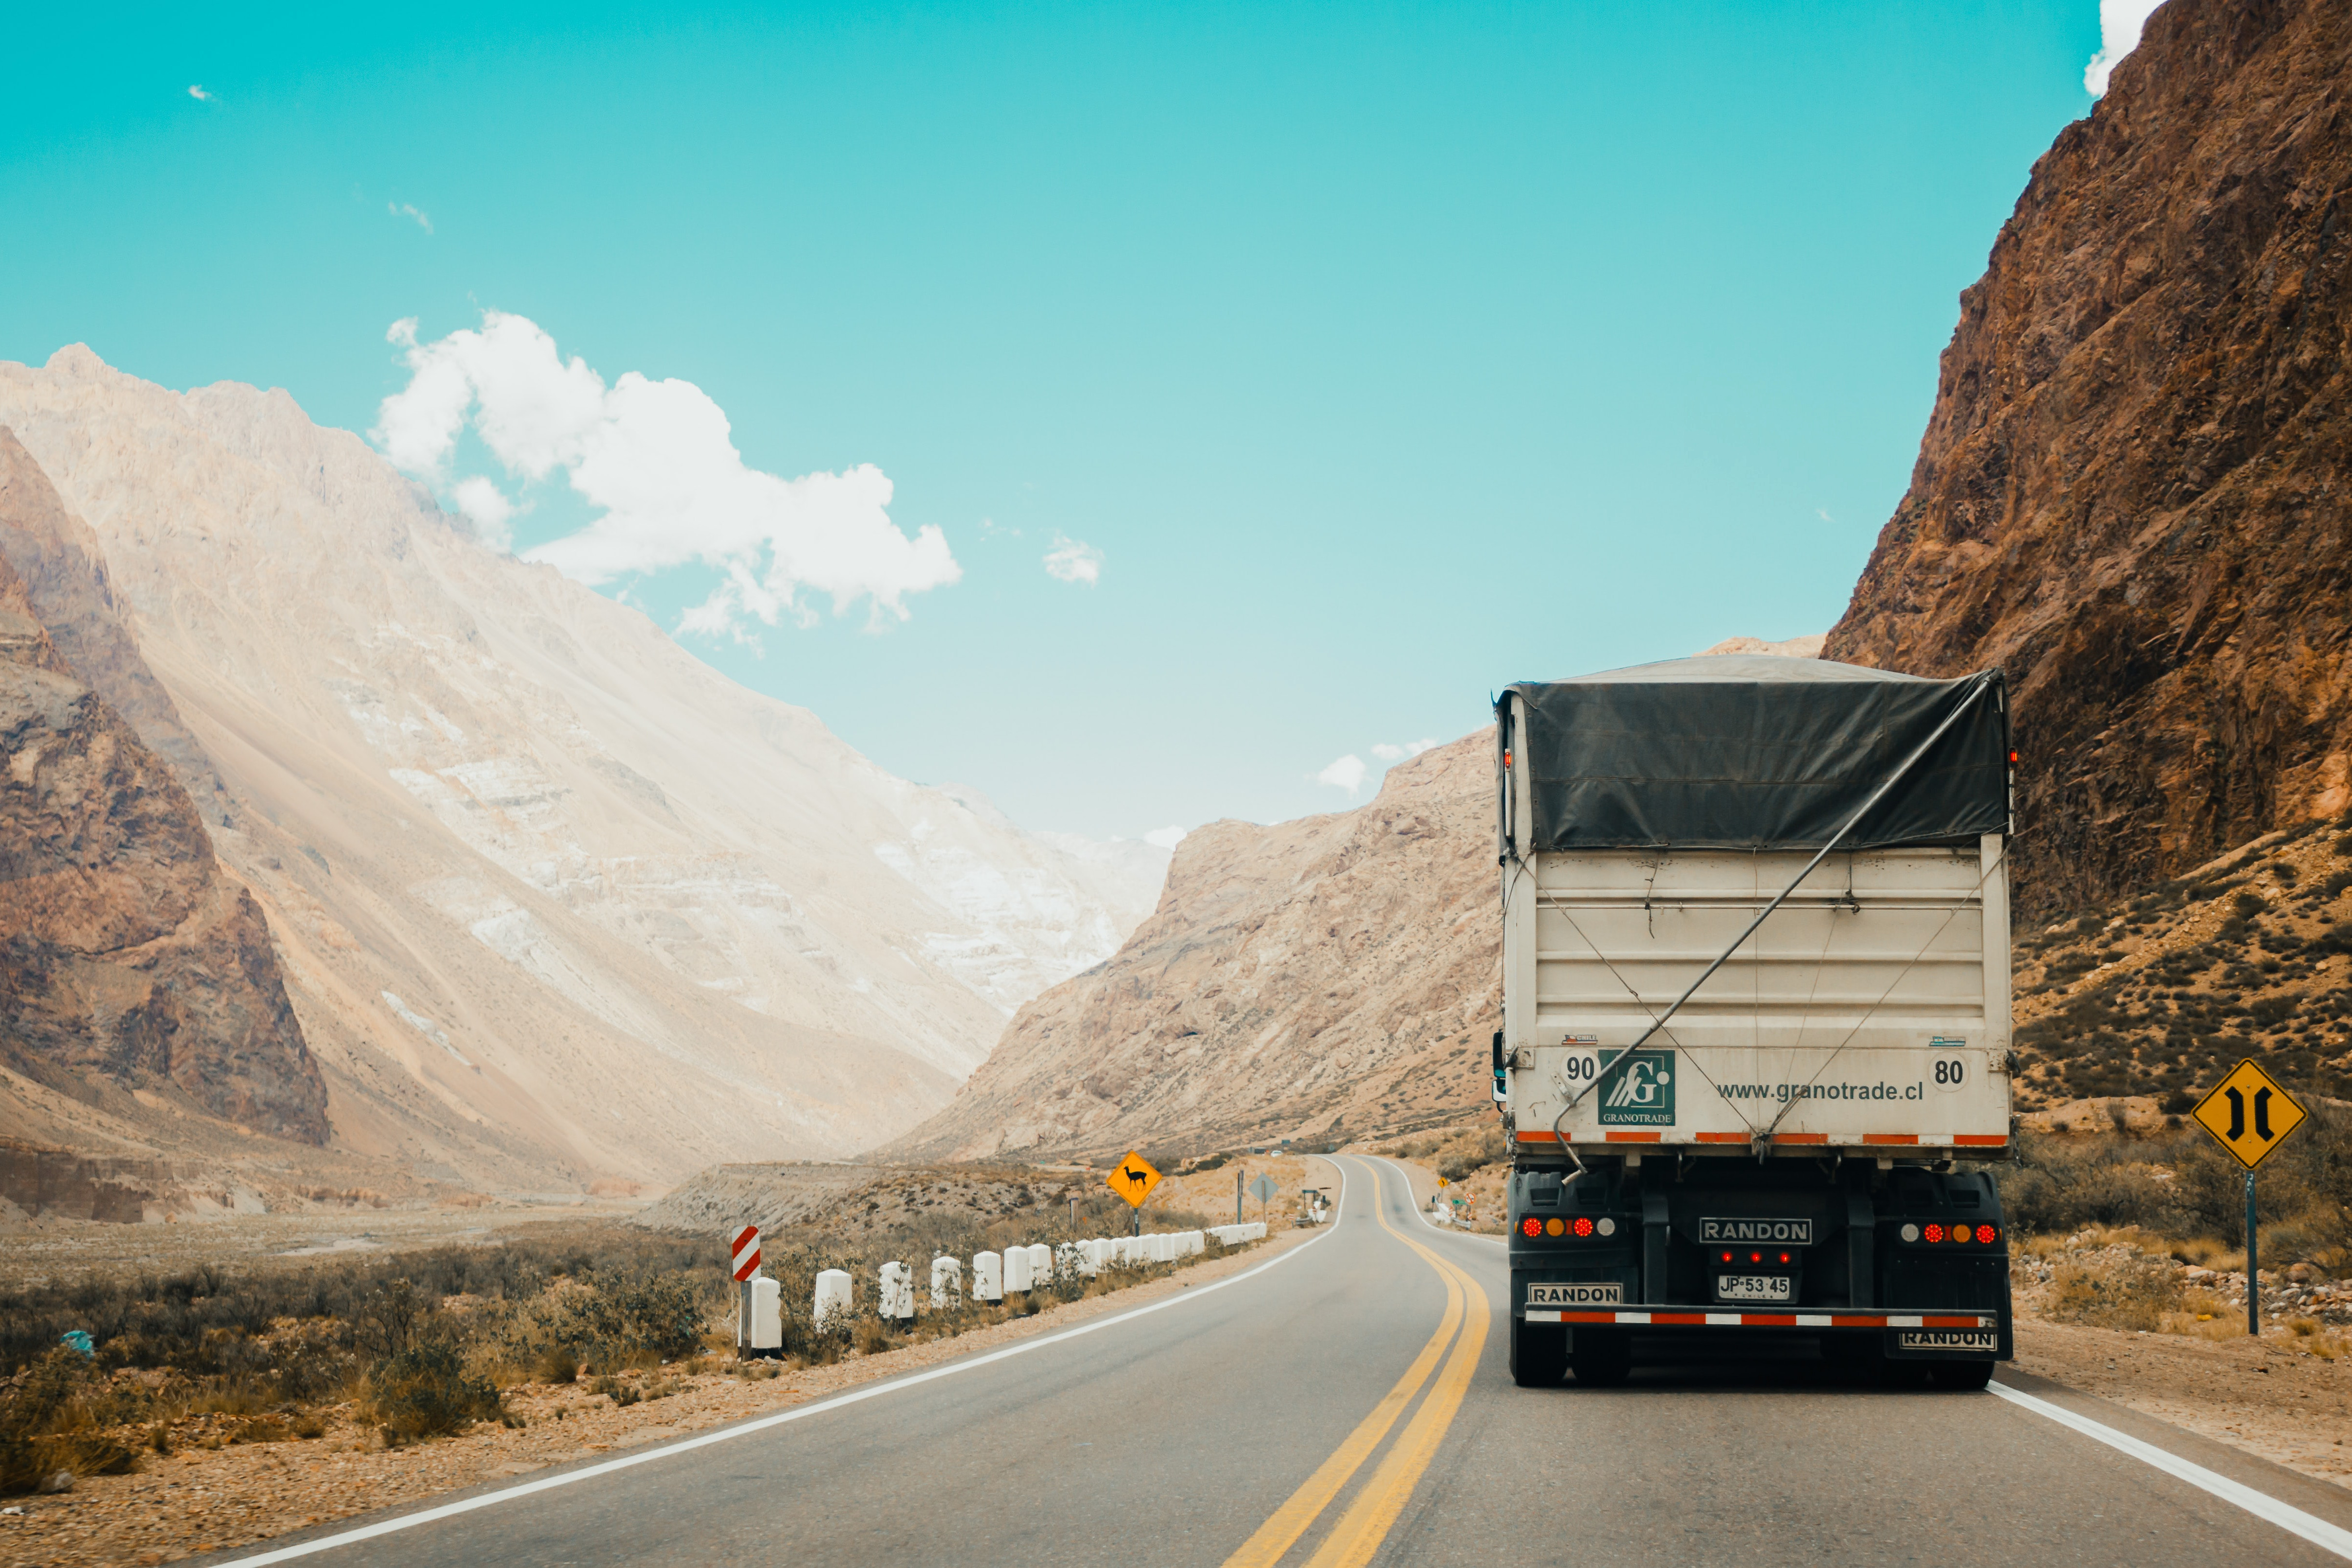 Truck driving on a road with blue sky in the background.